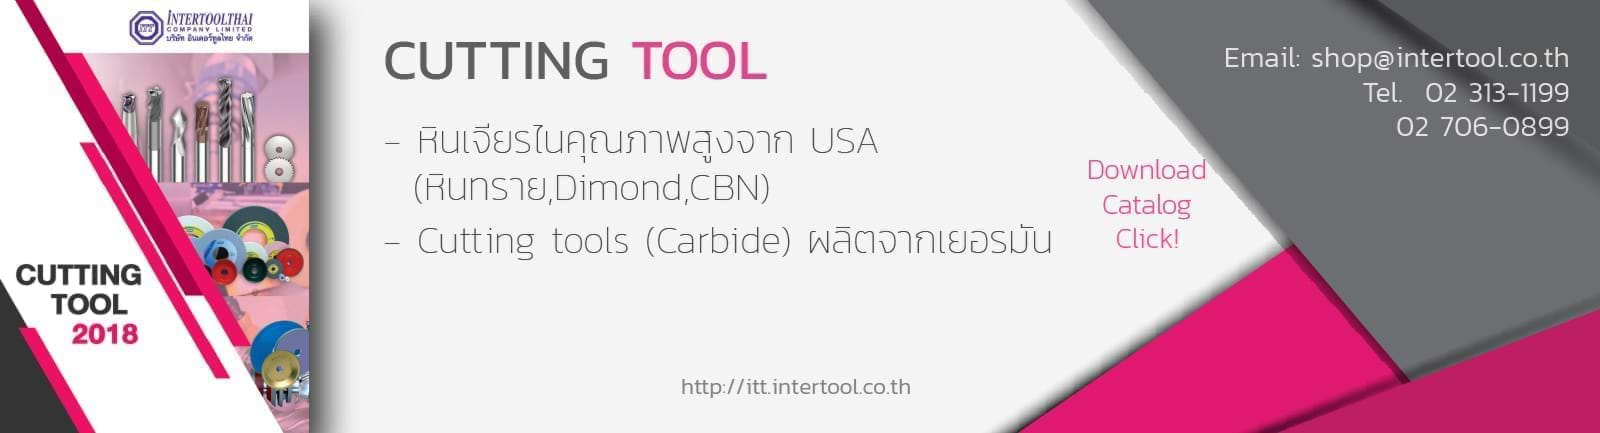 Cuttingtool